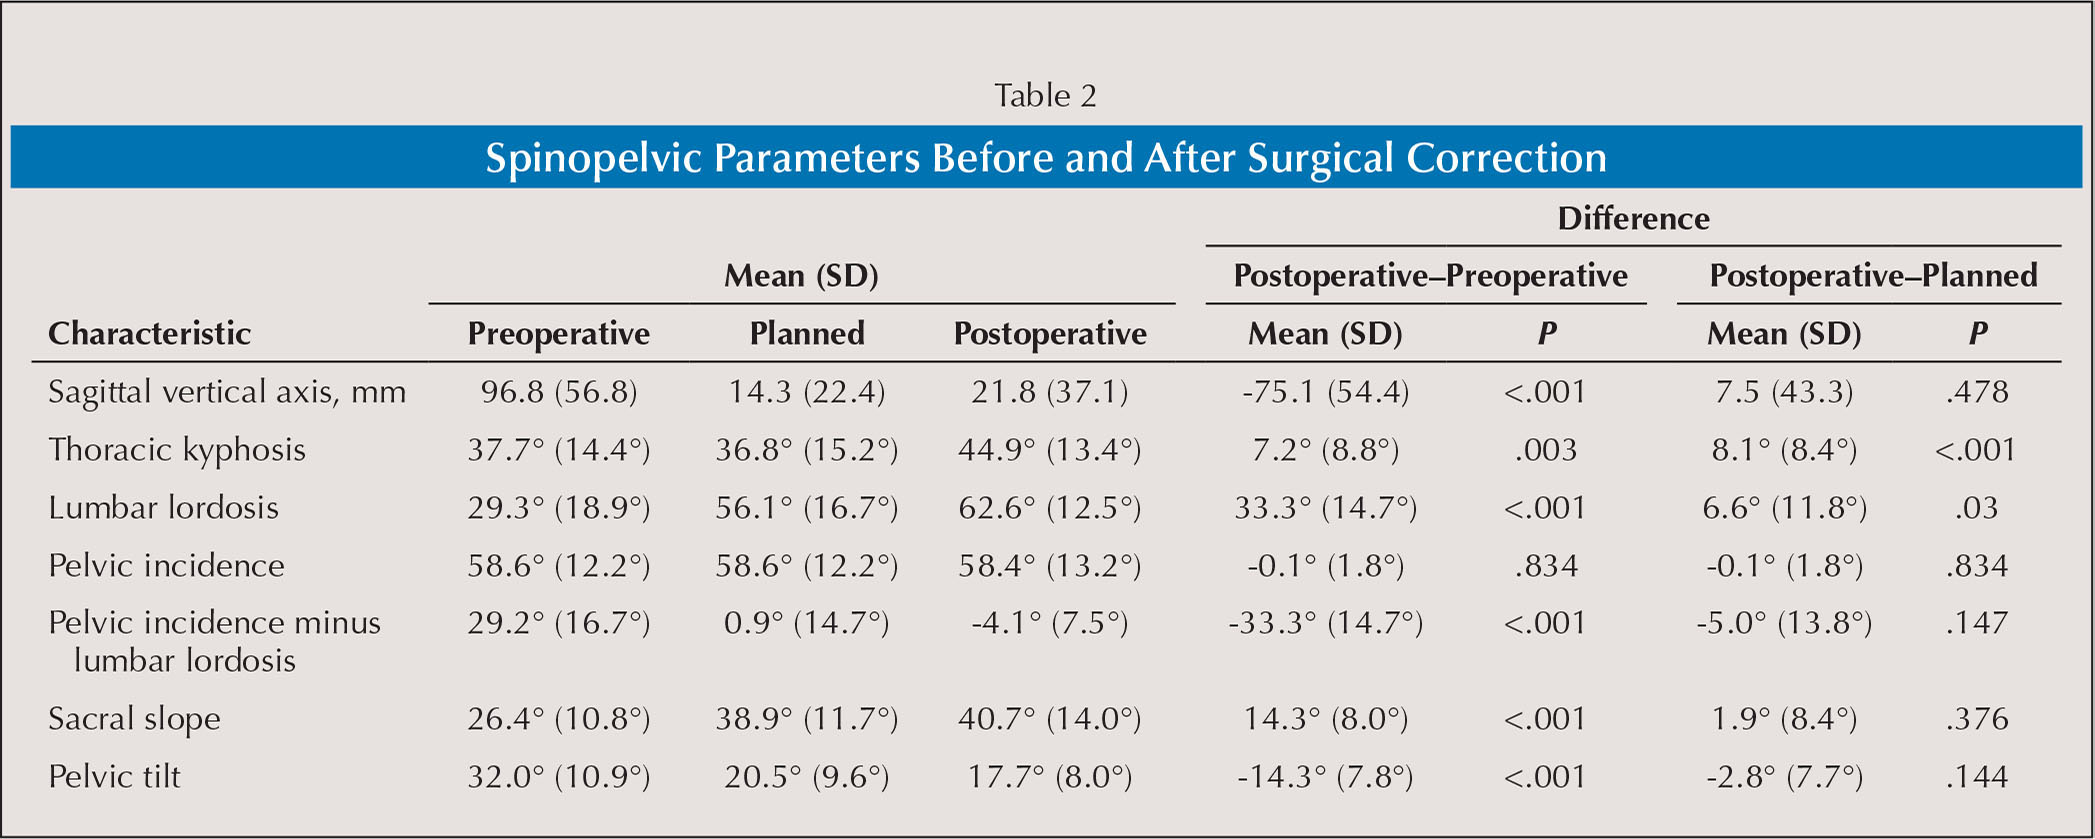 Spinopelvic Parameters Before and After Surgical Correction